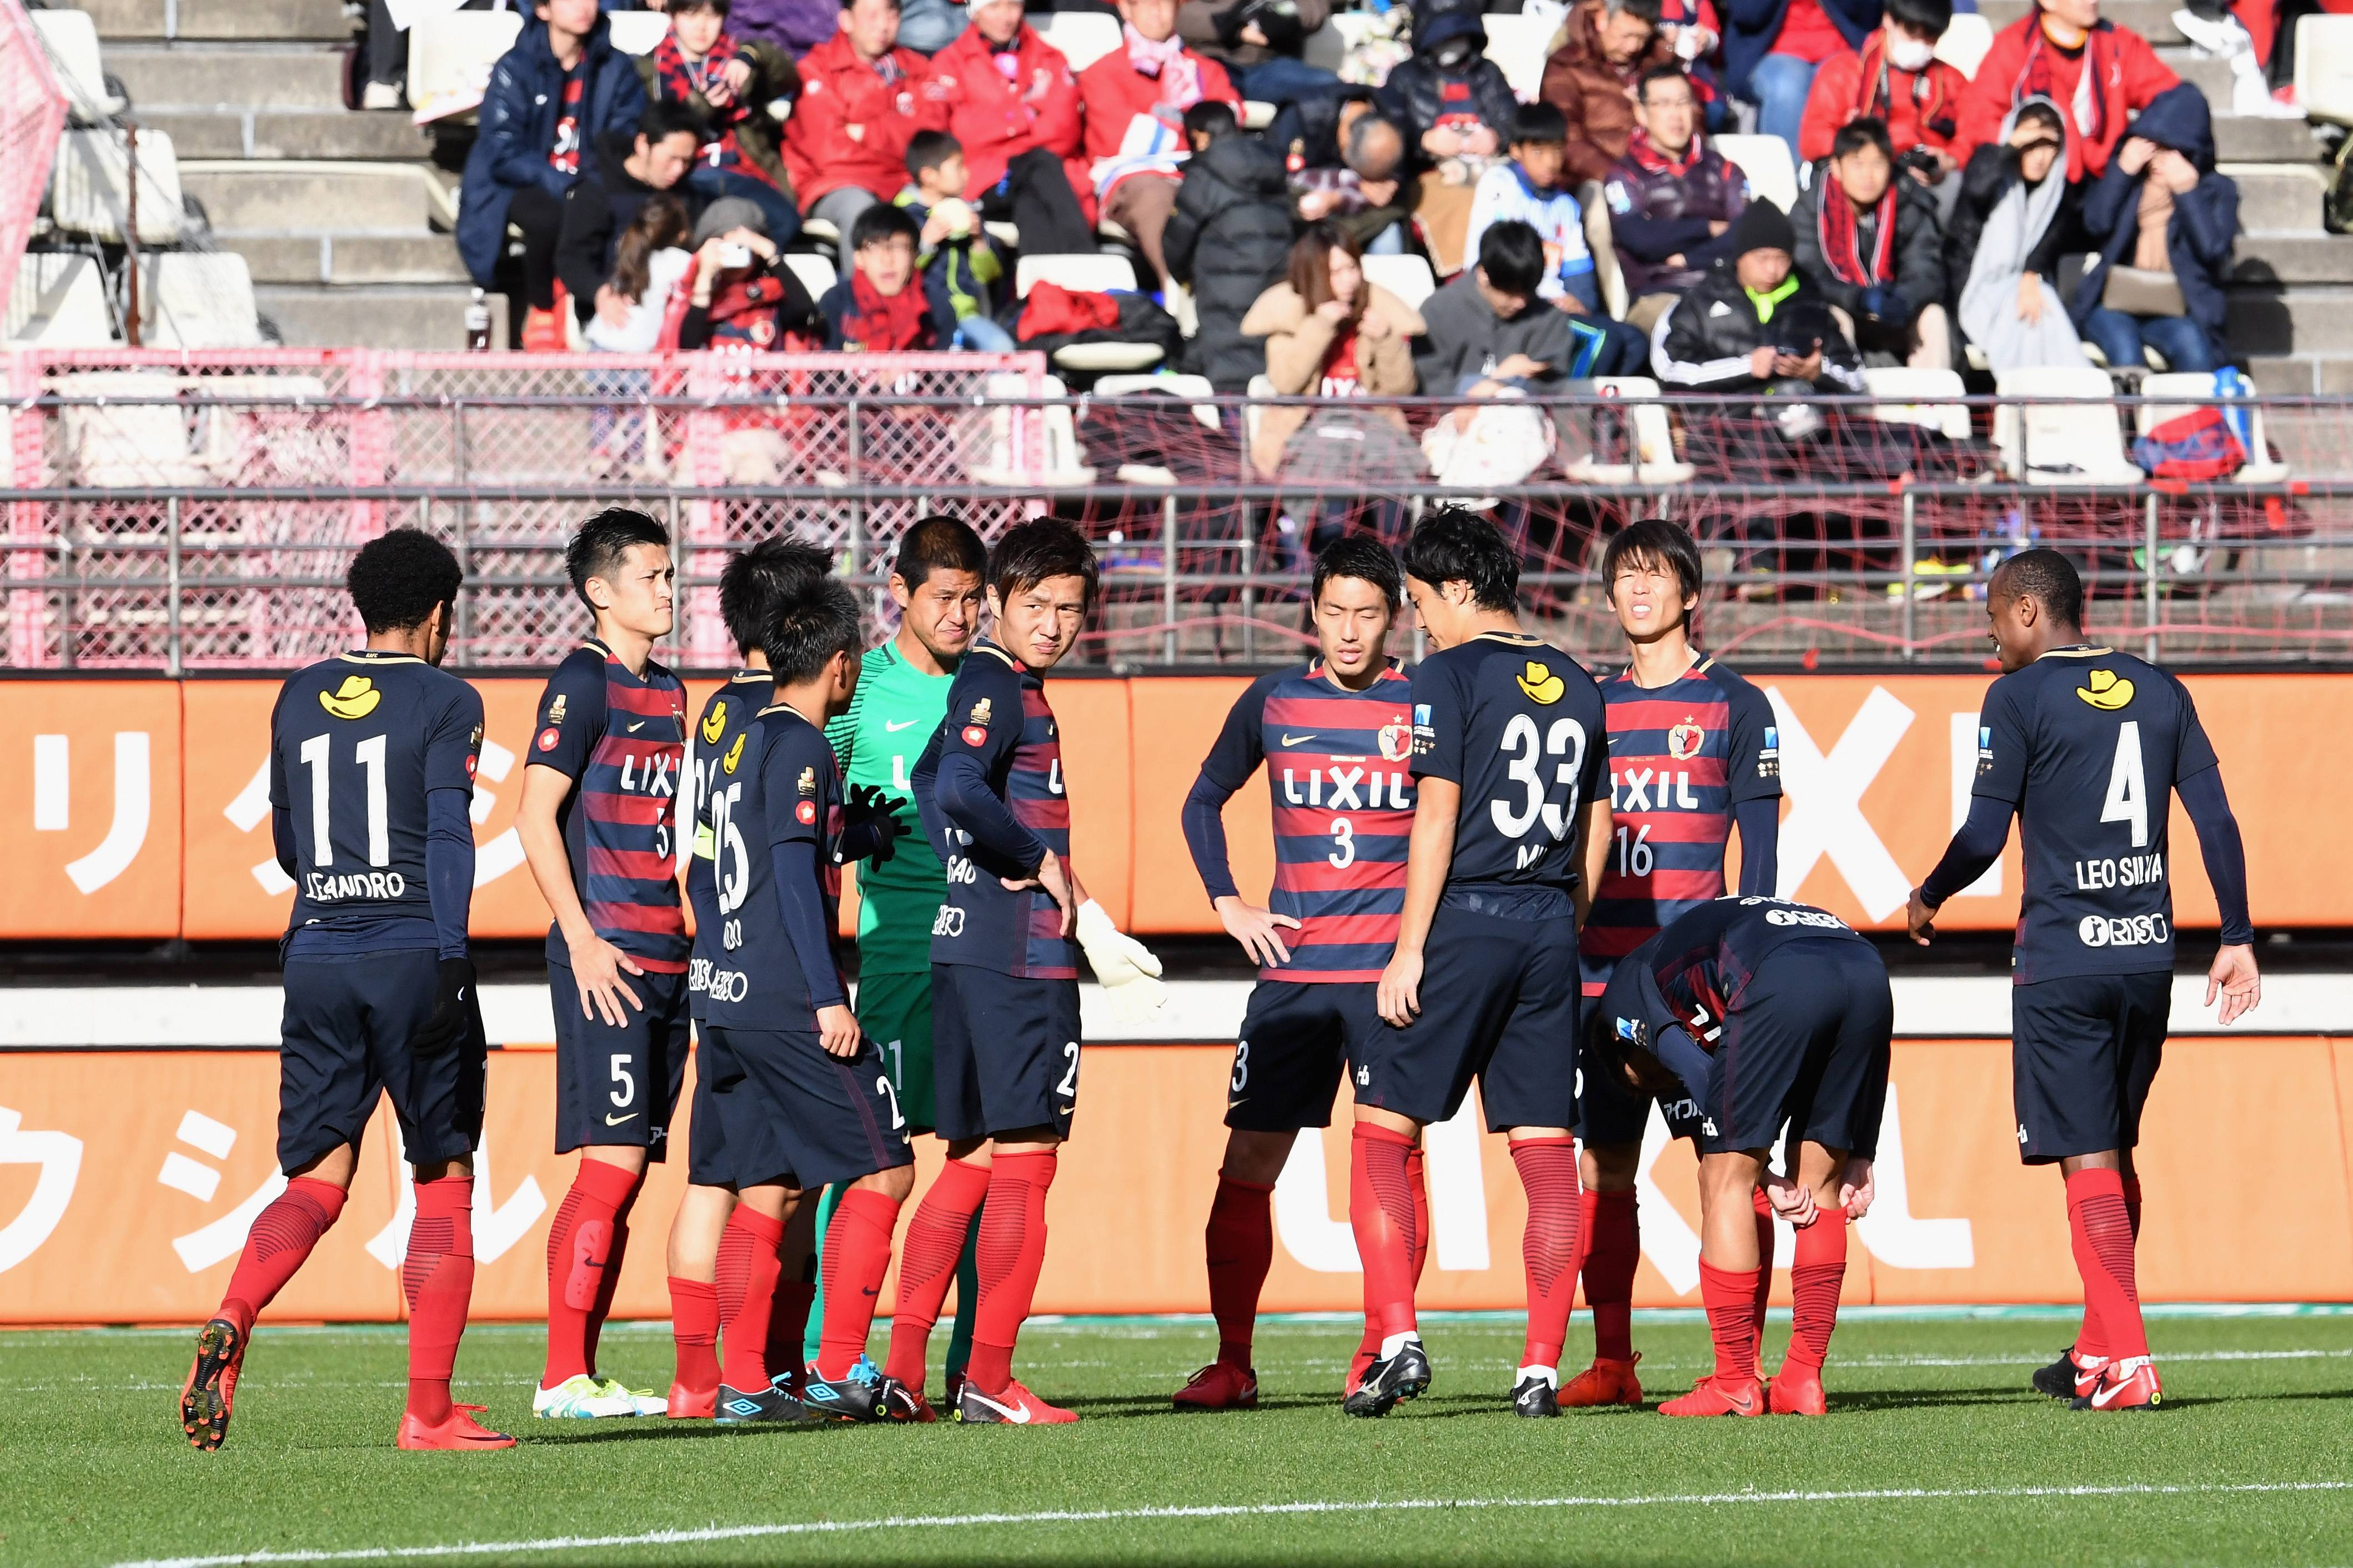 ANALYSIS: Kashima Antlers face their worst start in history